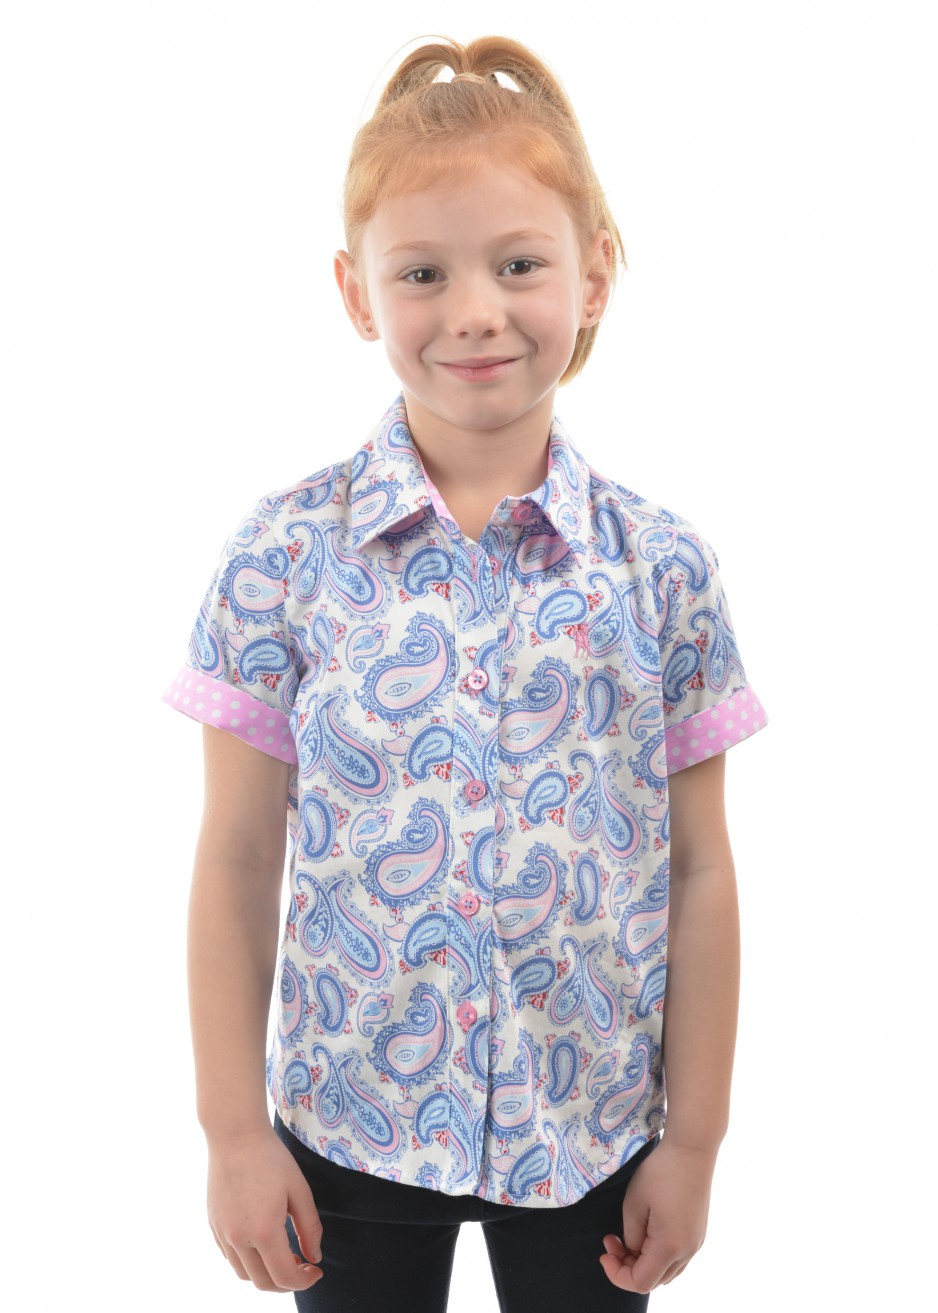 Girls Shirts View Our Range Of Thomas Cook Products